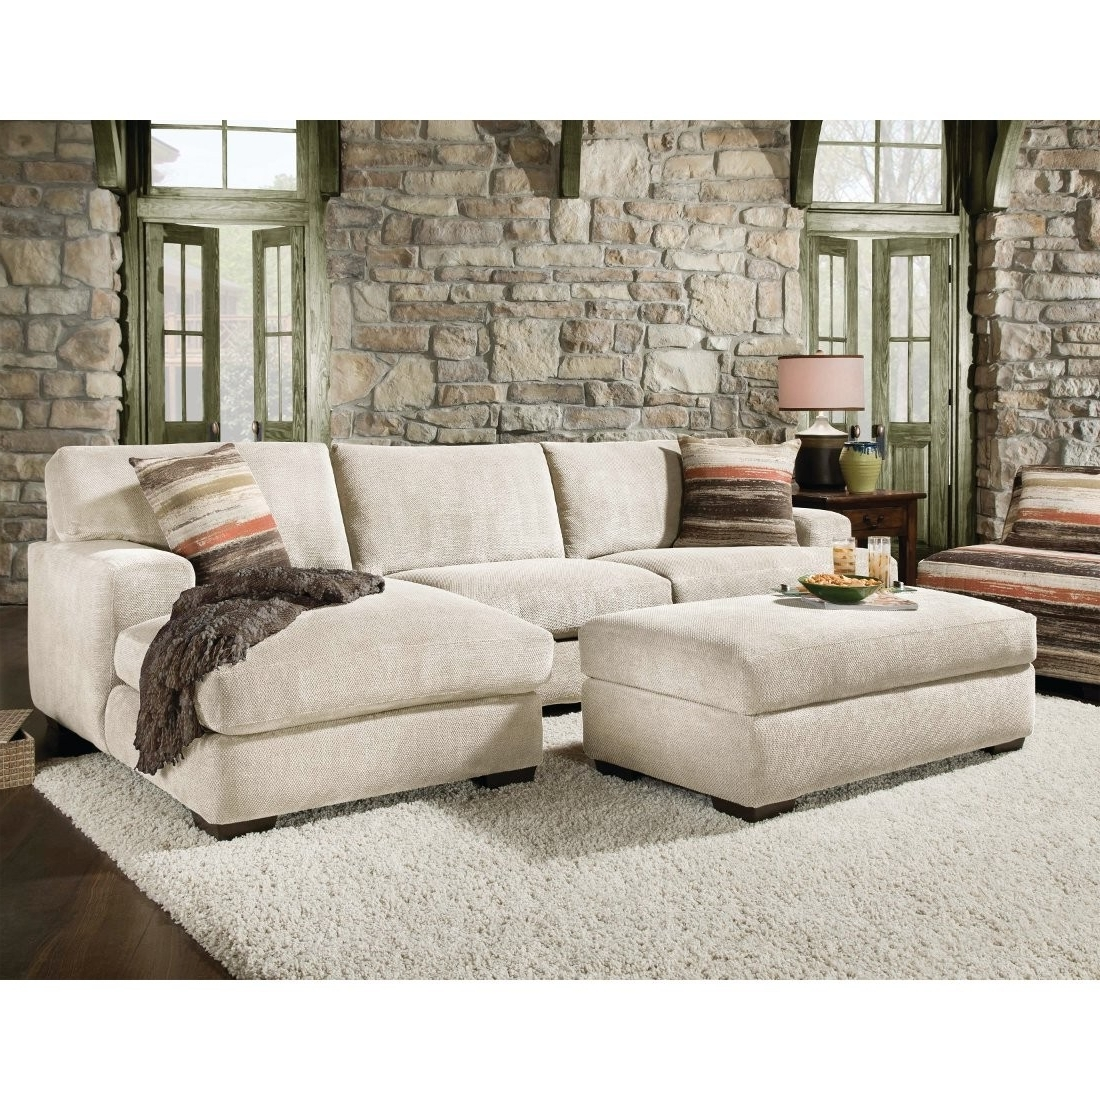 2019 Sectional Sofas With Chaise Lounge And Ottoman Intended For Sectional Sofa Design: Sectional Sofa With Chaise And Ottoman (View 3 of 20)